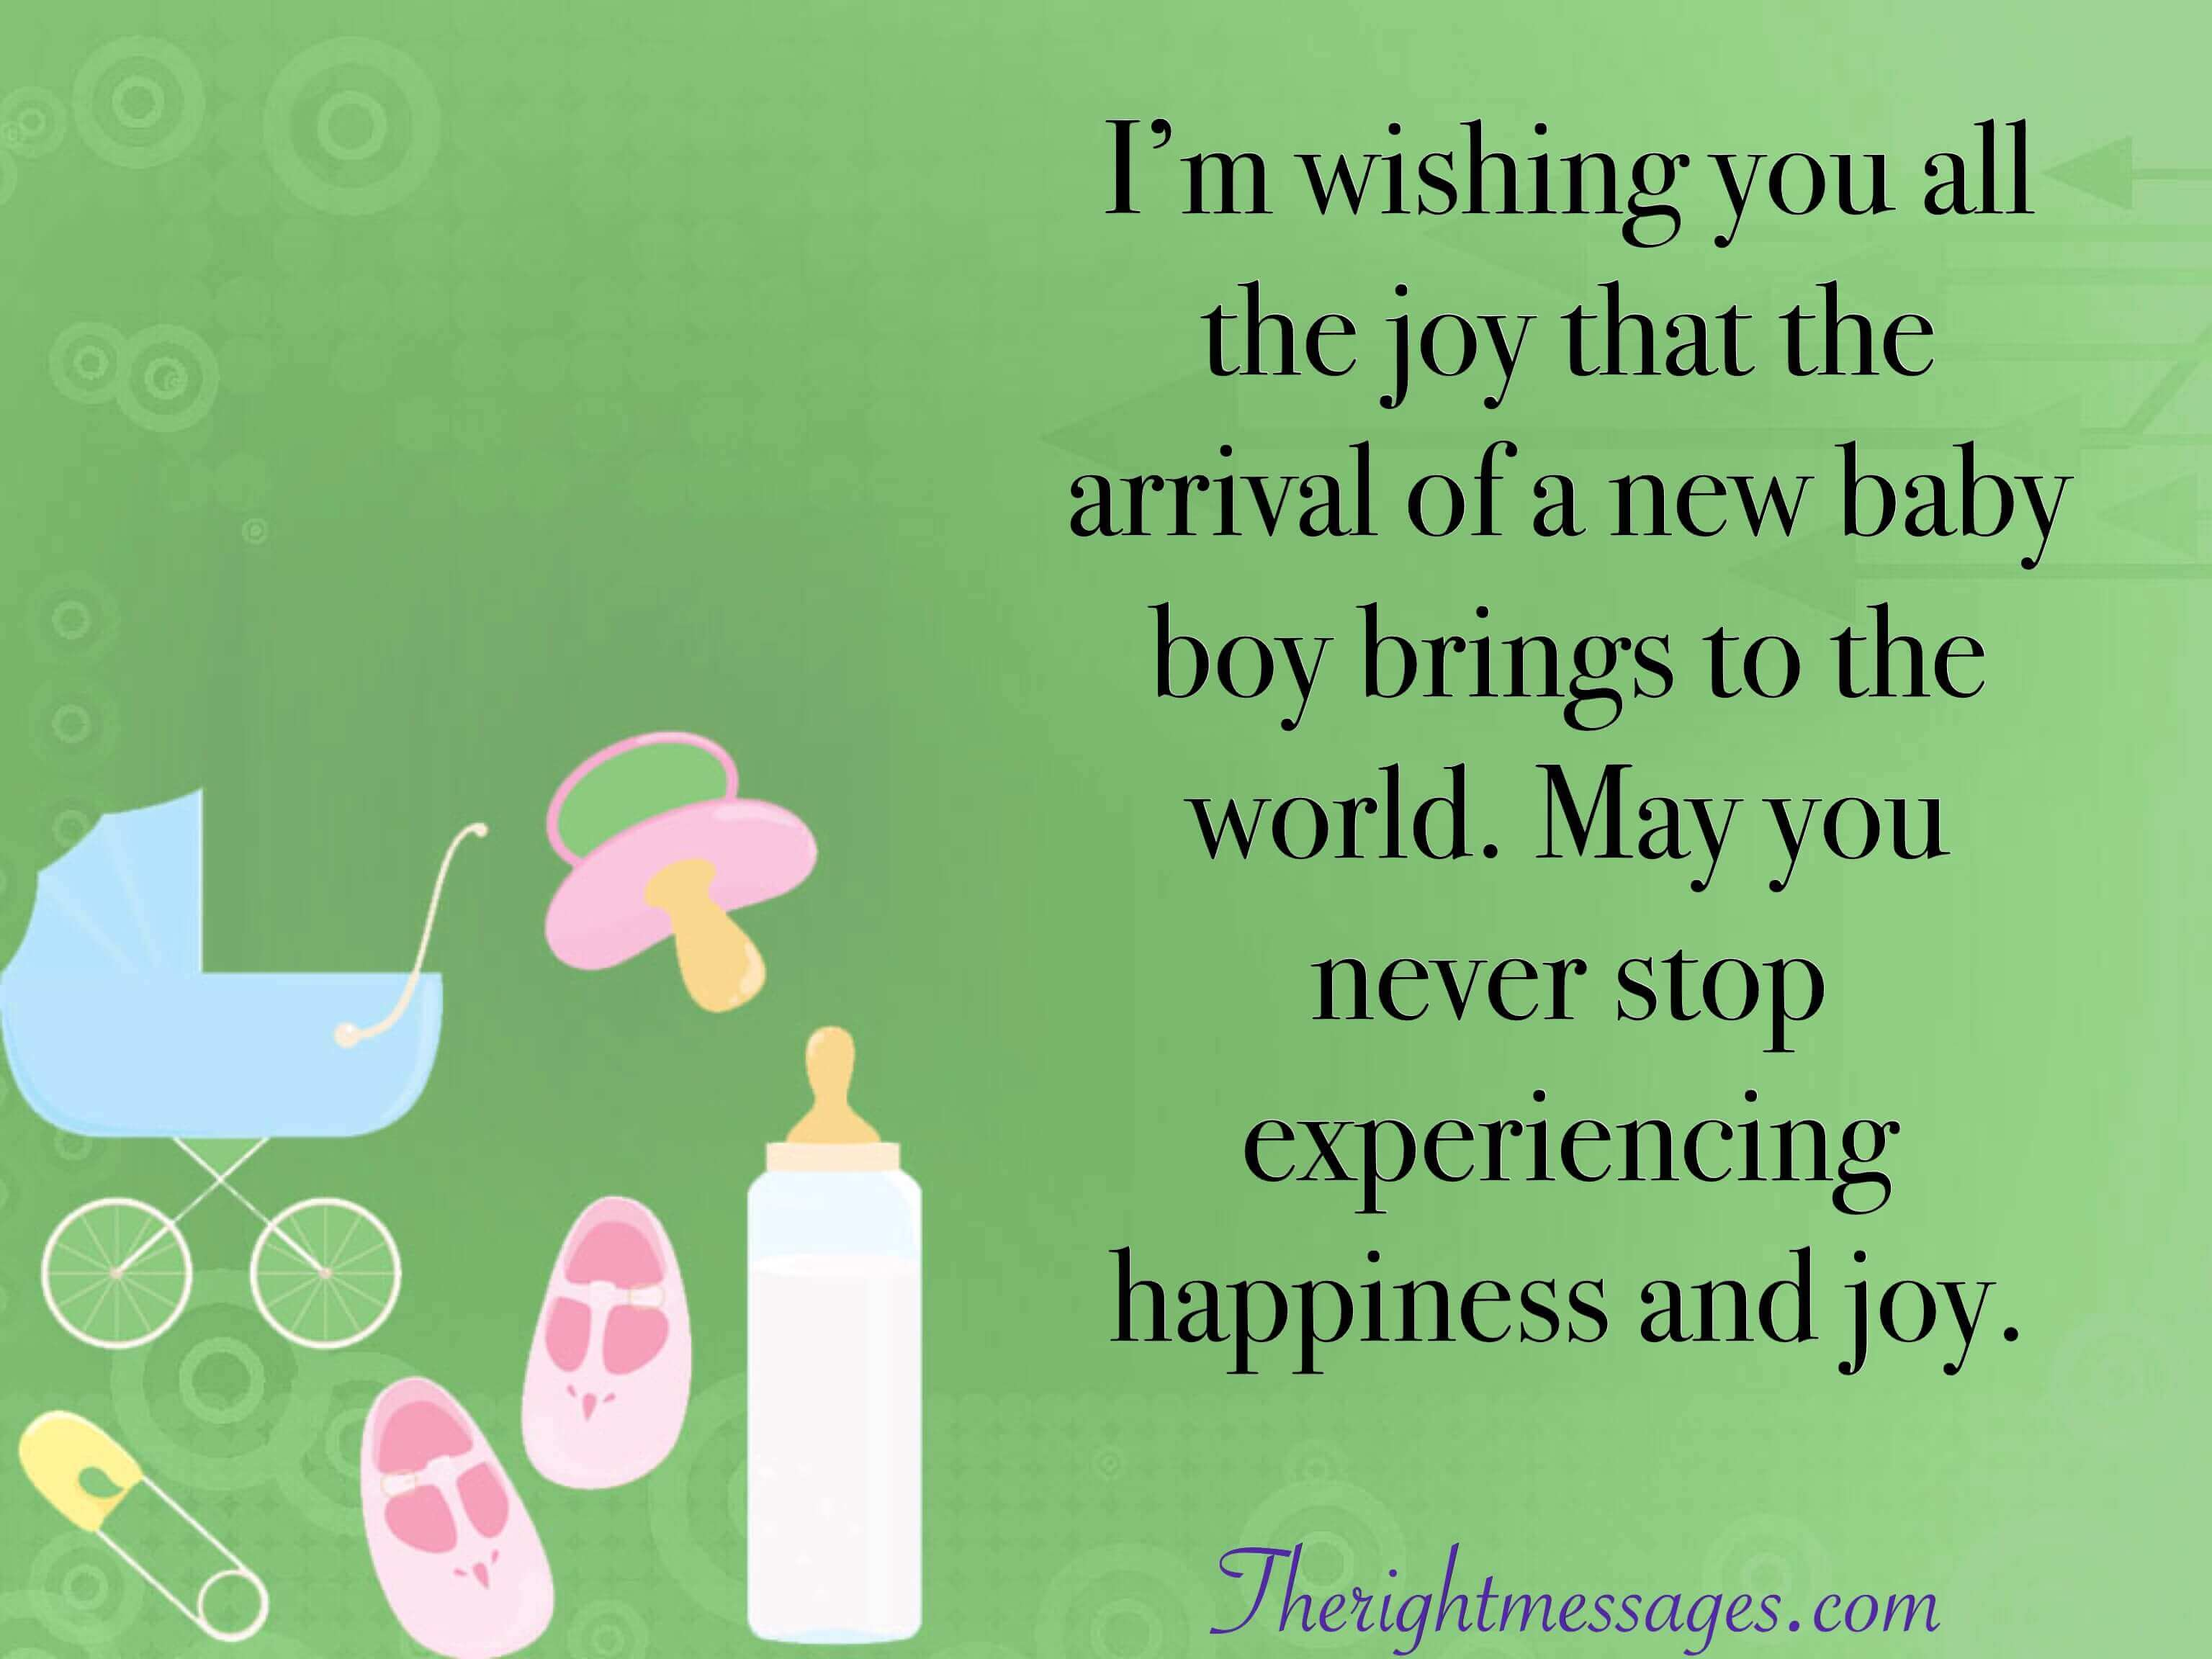 45 Congratulation Wishes Messages For New Born Baby Boy The